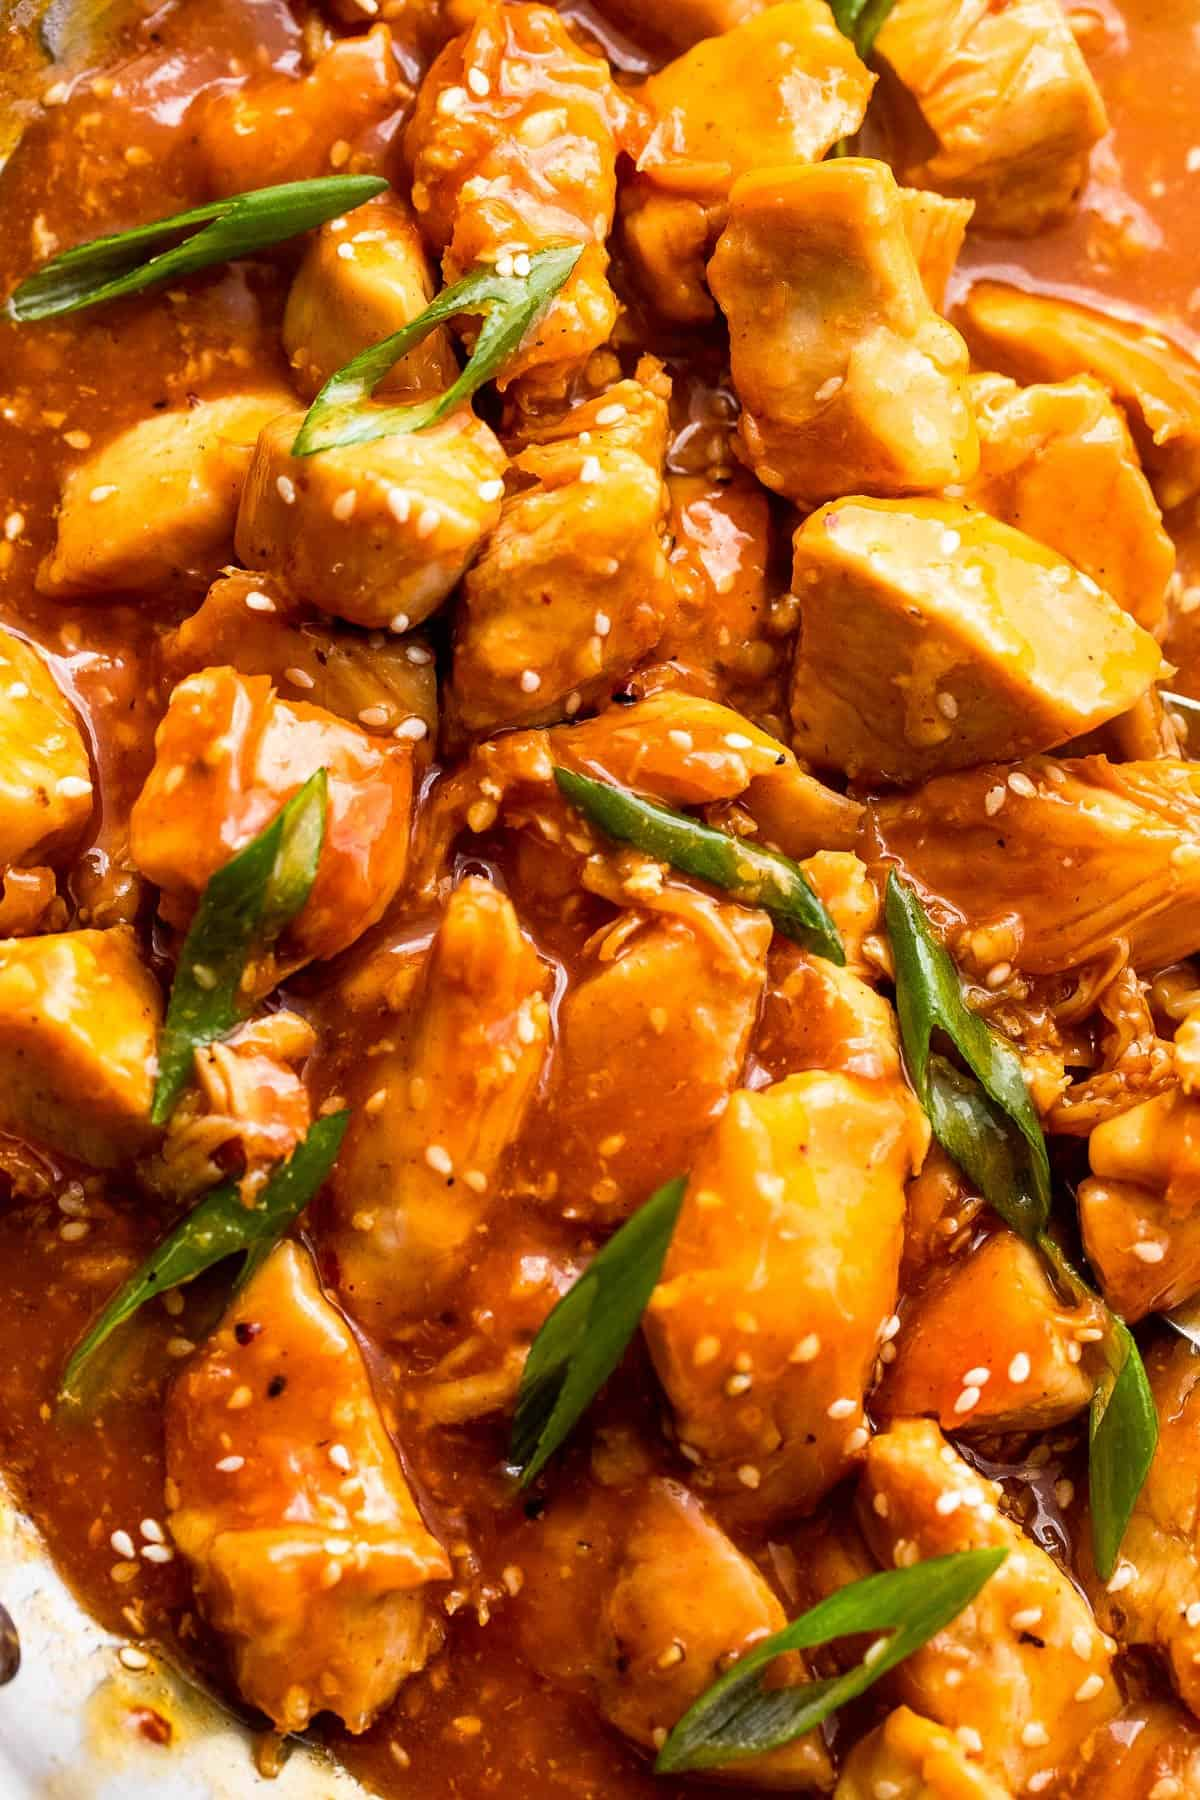 up close shot of chicken bites in orange sauce and topped with sesame seeds and green onions